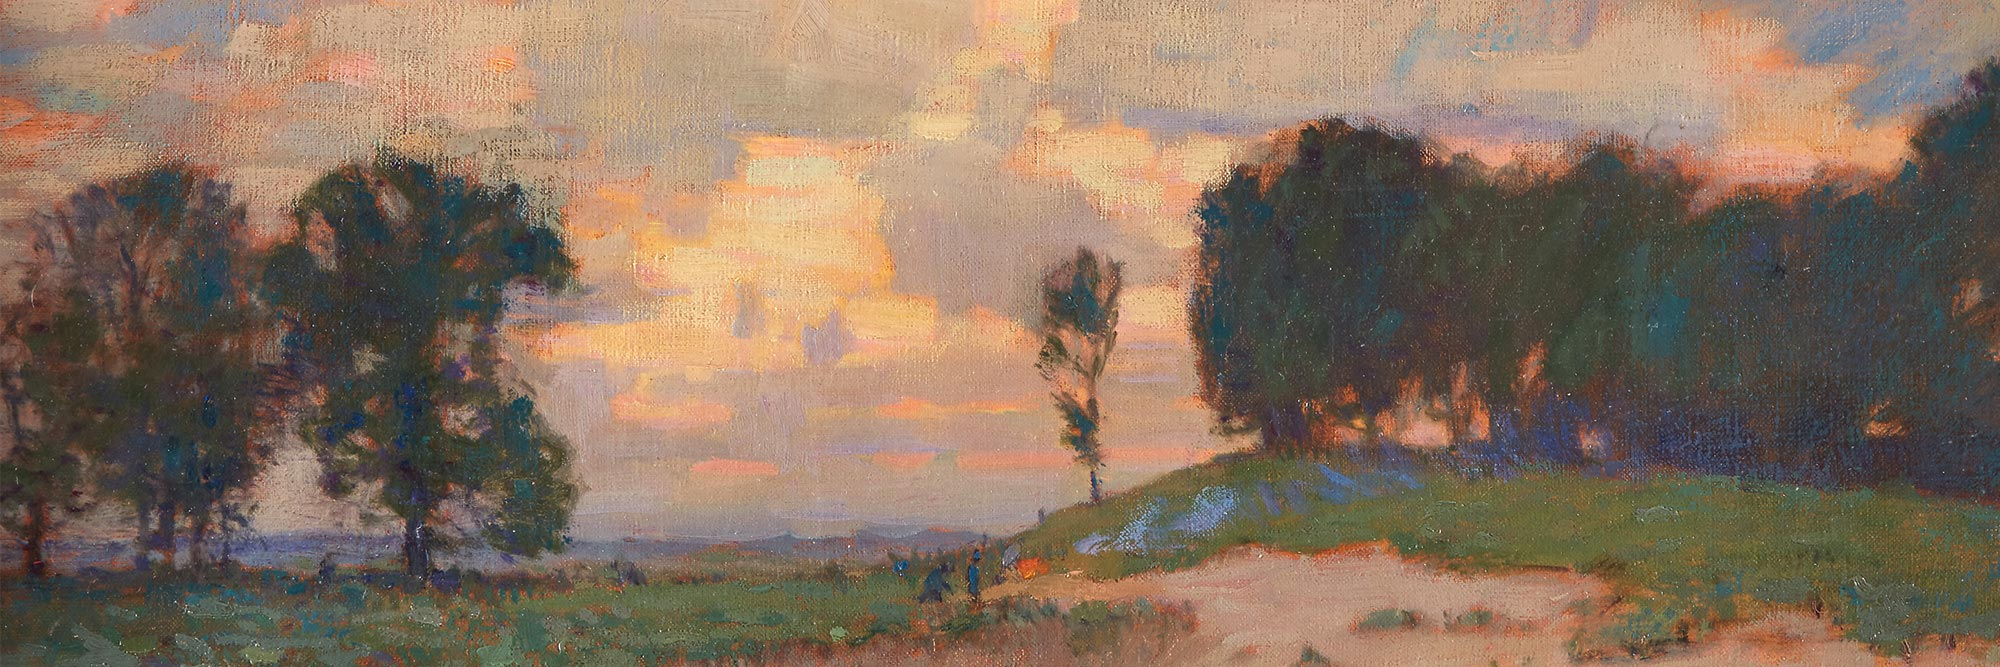 painting of landscape with trees